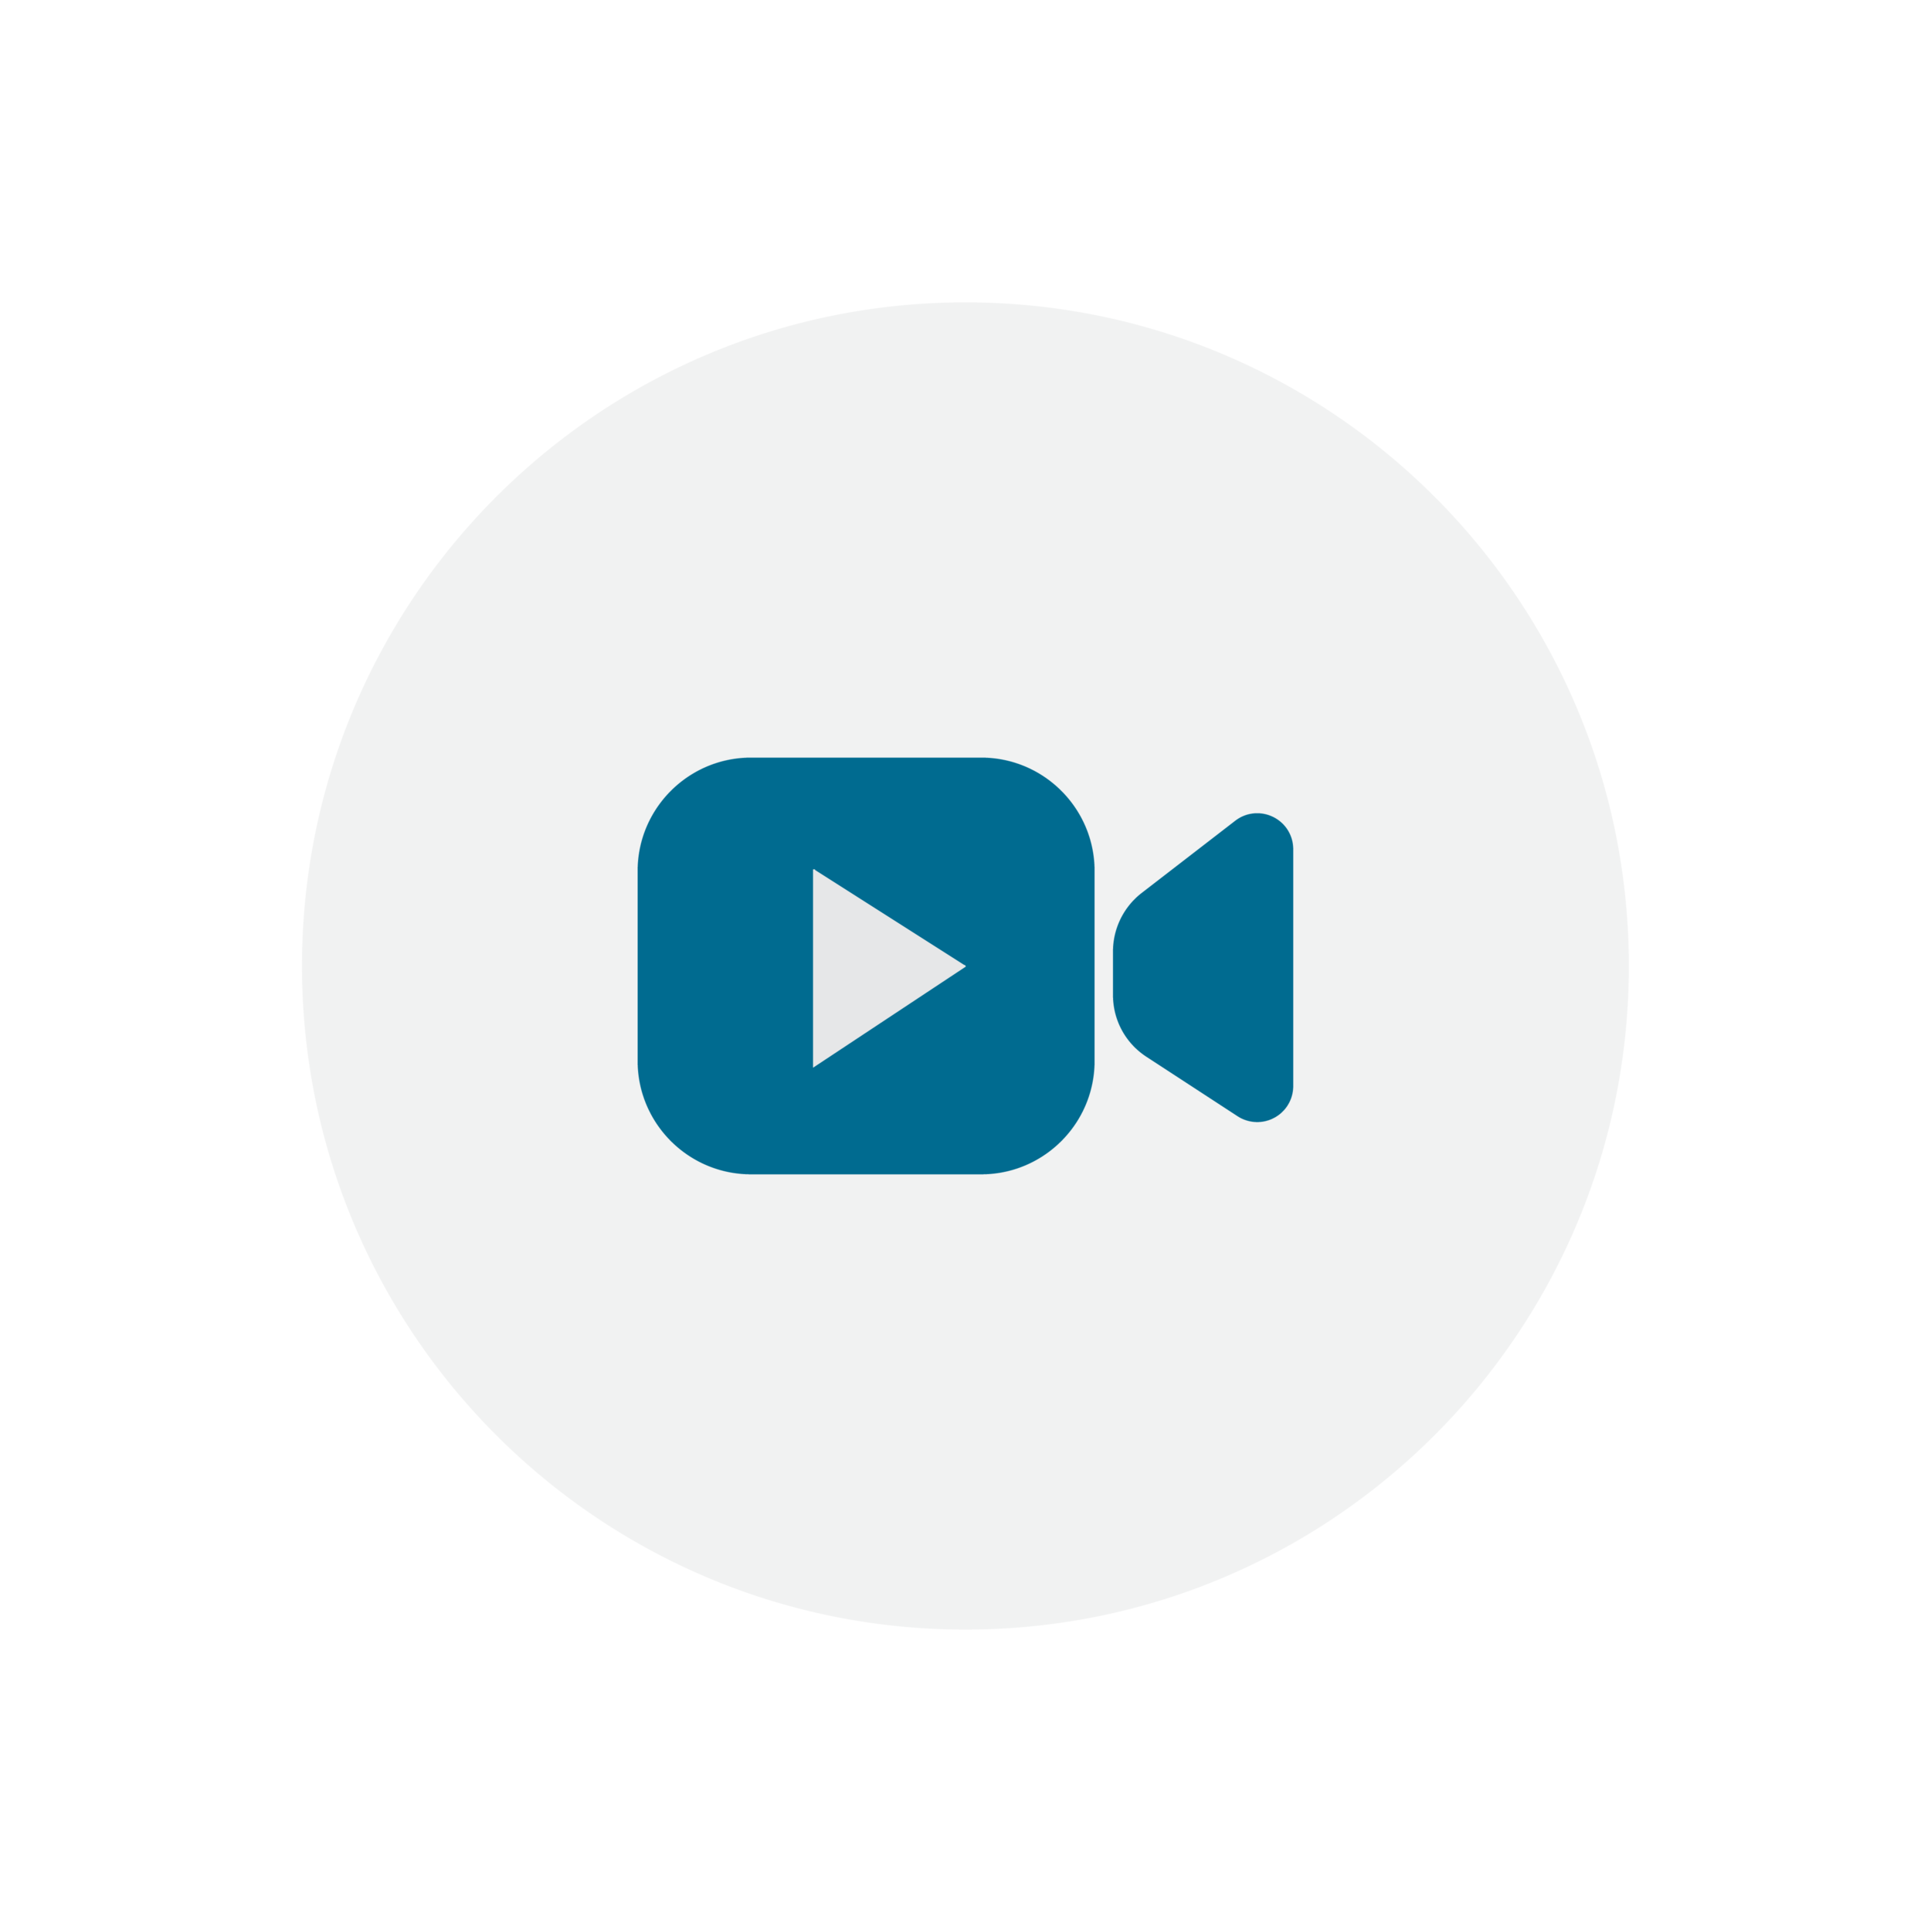 Book a Video Demo - Want to see the products in action? Book a video call with one of our sales team who will demo the products and answer any questions you have.